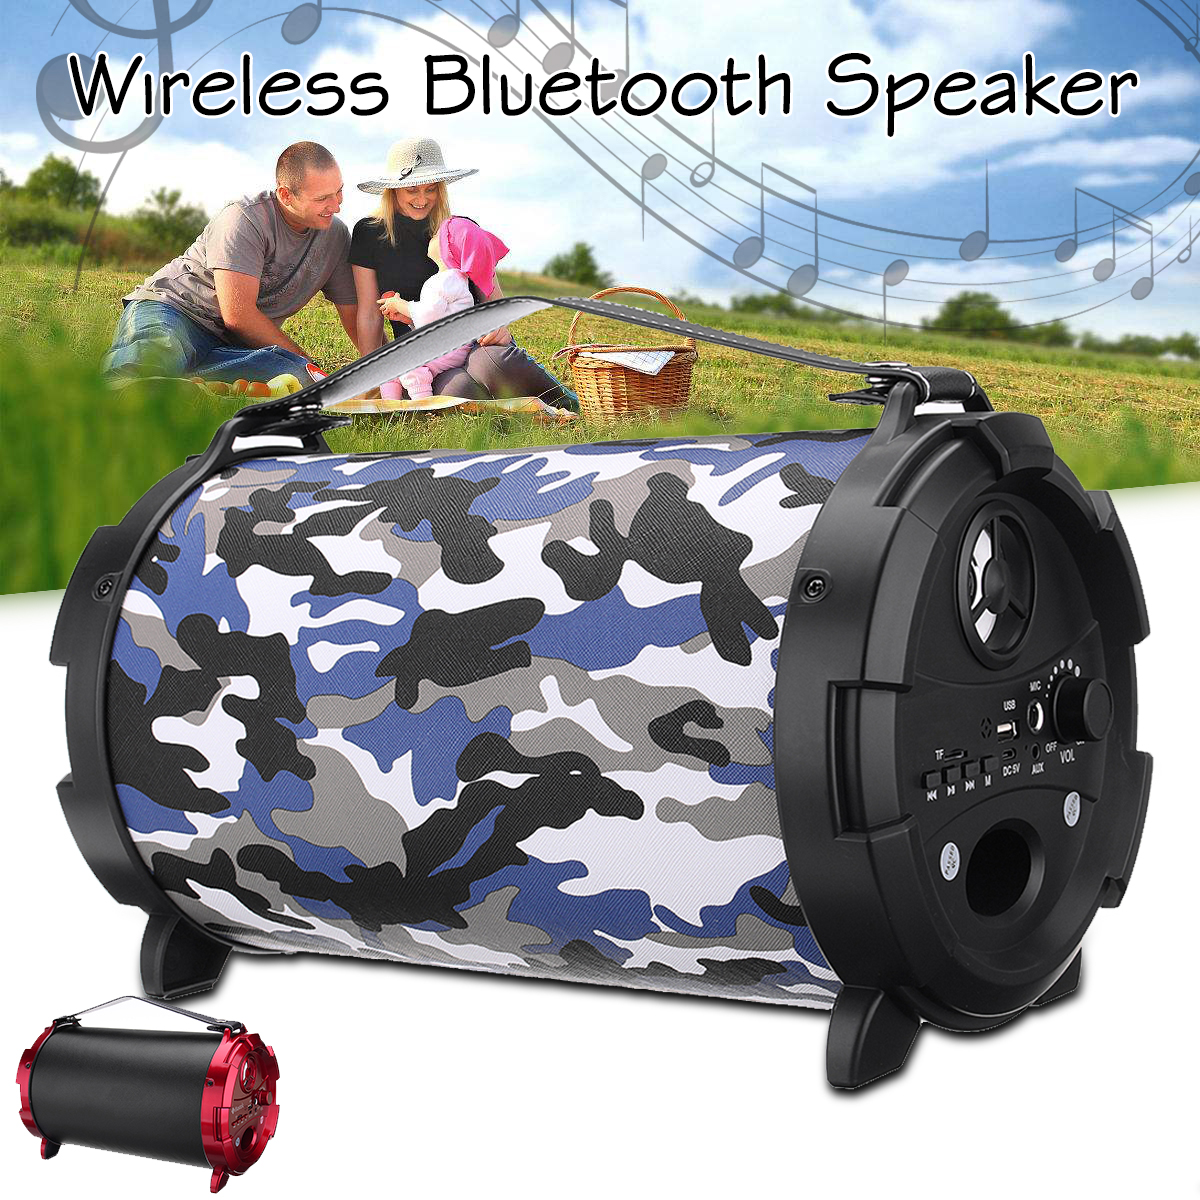 10W Outdoor Portable Hifi Bluetooth Speakers Wireless Bass Subwoofer Loundspeaker FM Radio TF Card/USB/AUX Stereo with Mic s309 diy wooden bluetooth speaker portable fm radio pc usb aux tf card speakers stereo bass sound box for computer android ios